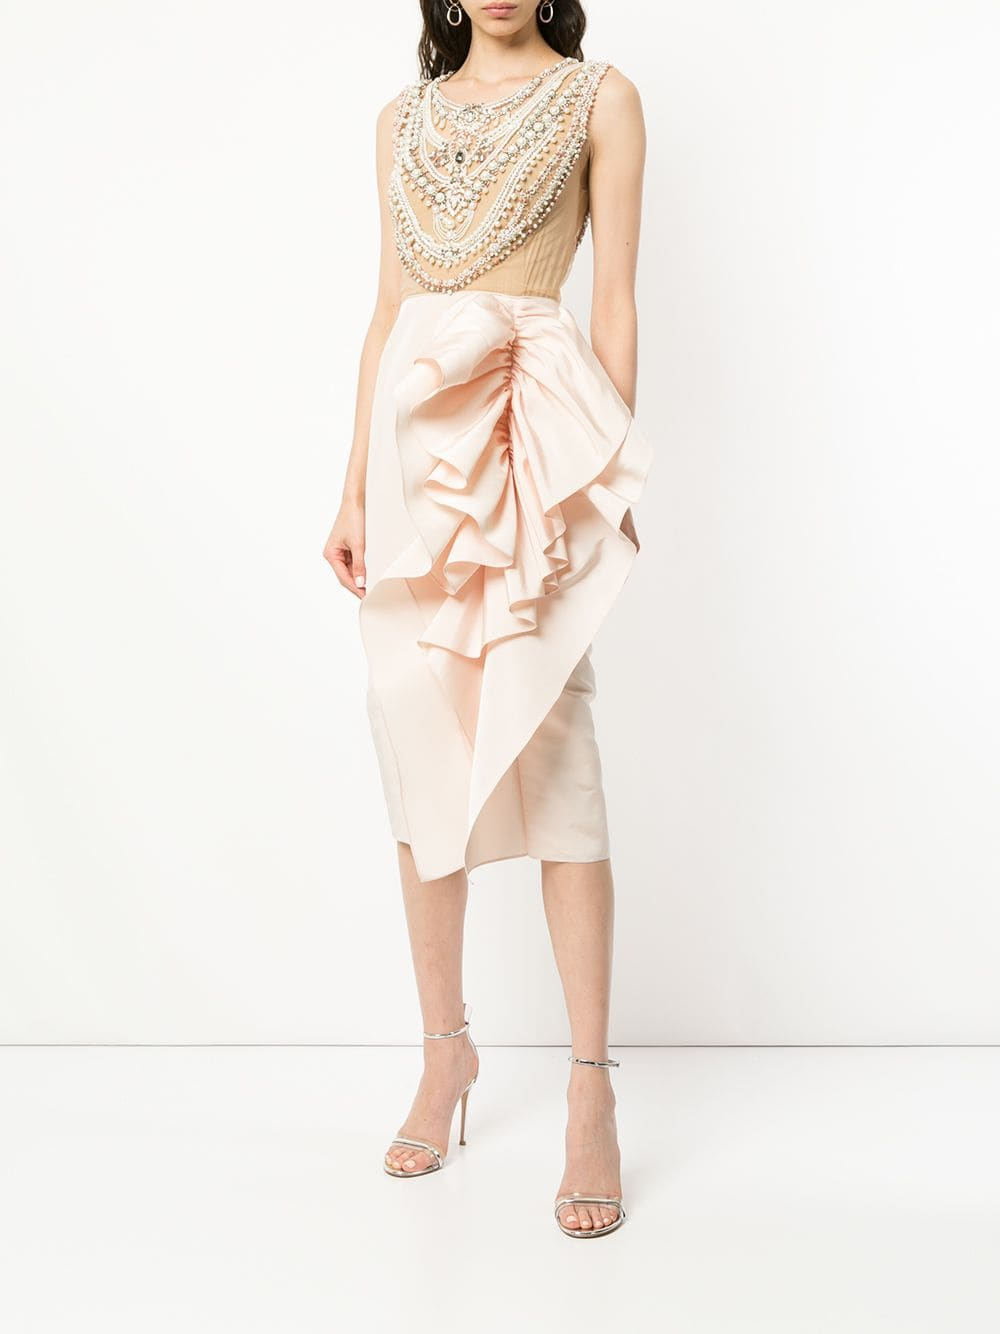 MARCHESA Embellished Bodice Cocktail Dress